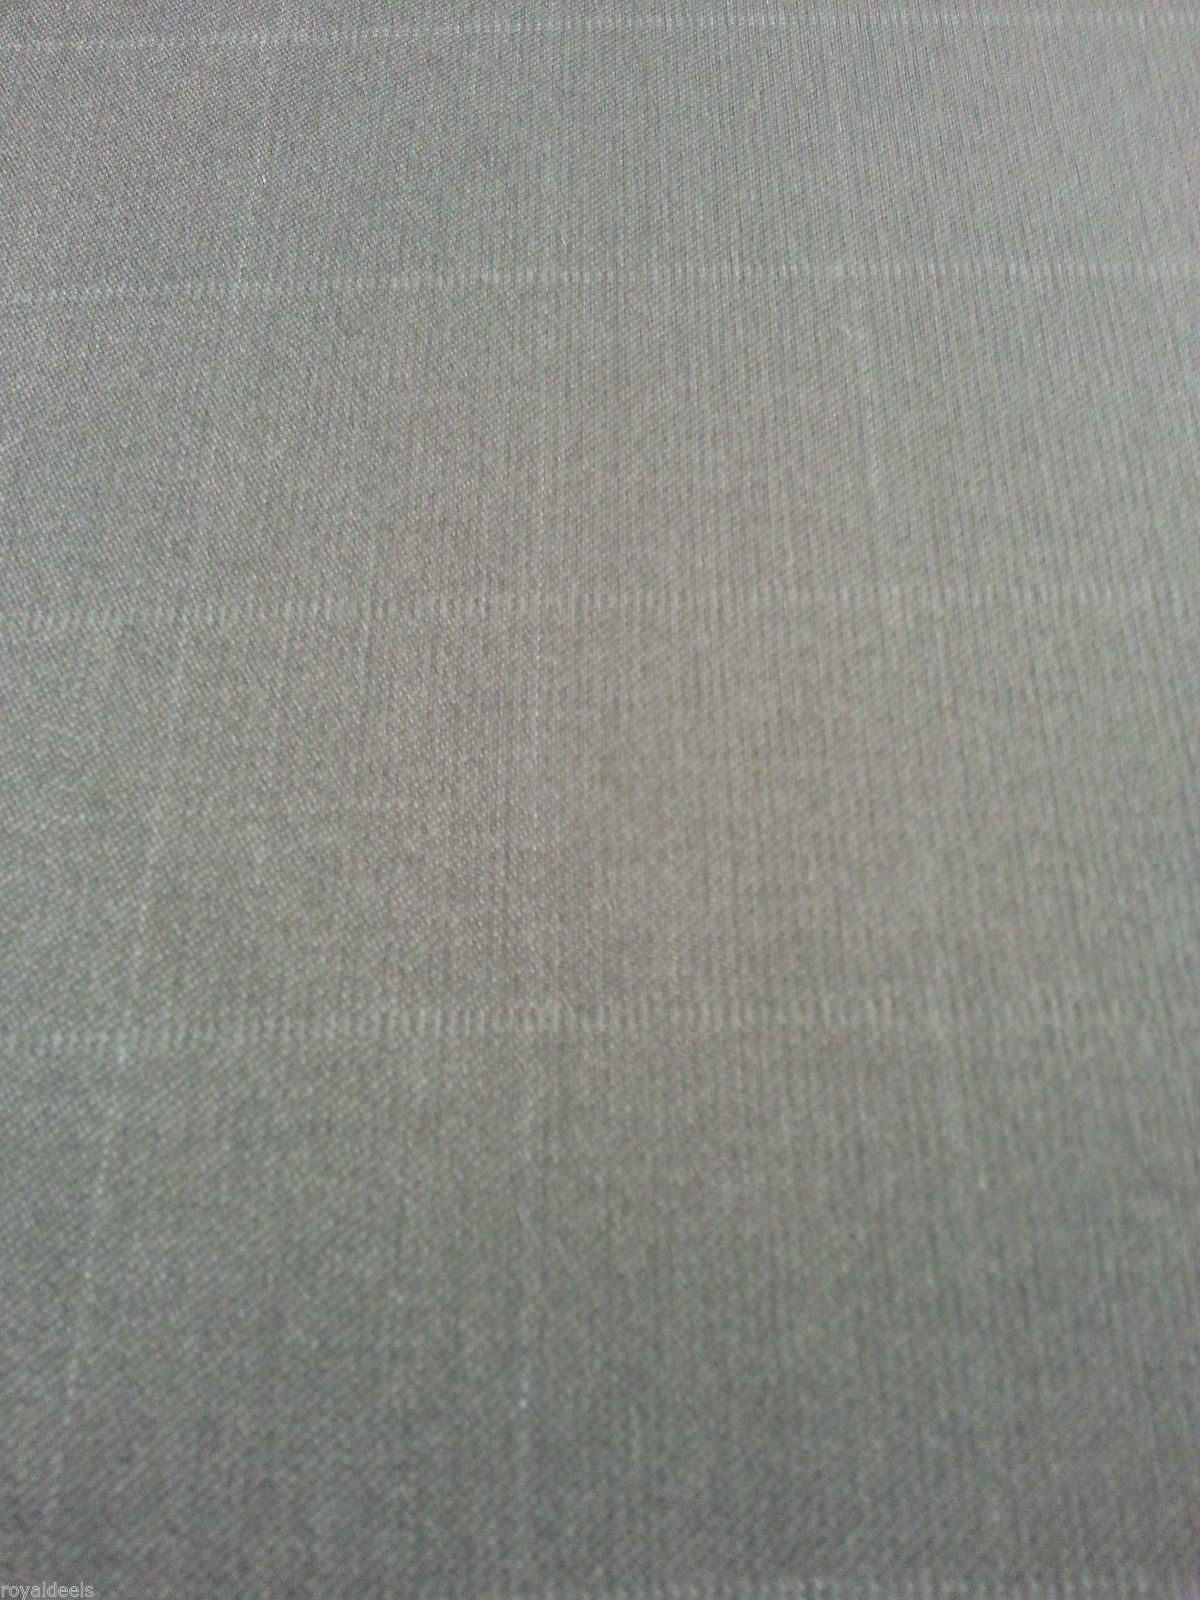 Super 130S fine  Cashmere Wool italian Suit fabric  8.4 Yard msrp 1295